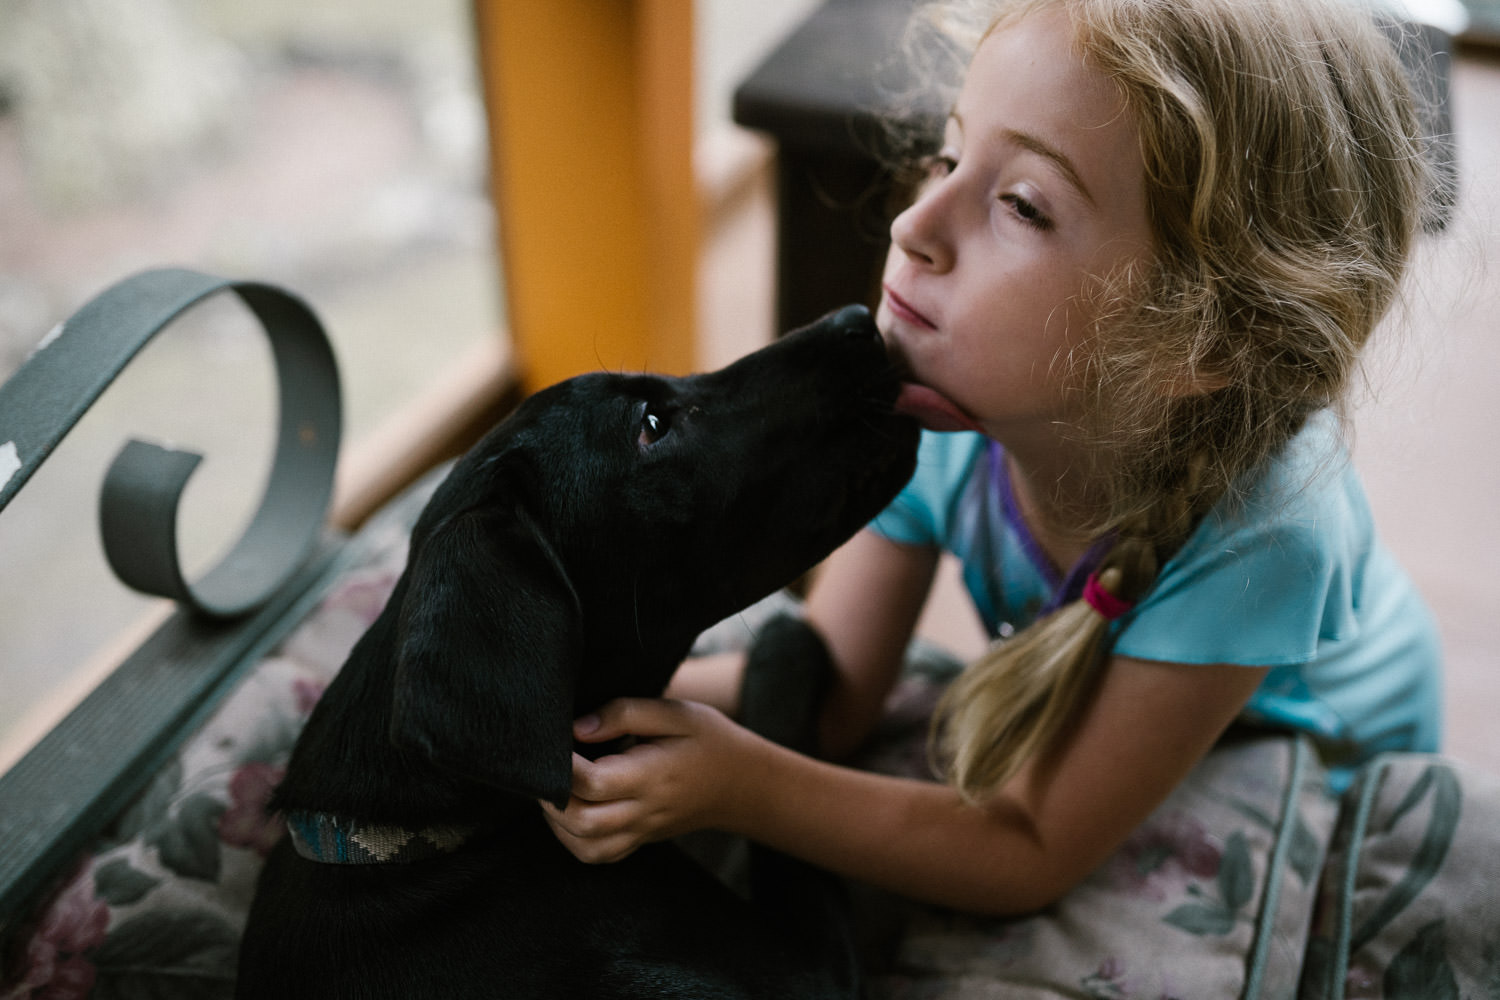 A dog licks a little girl's face.